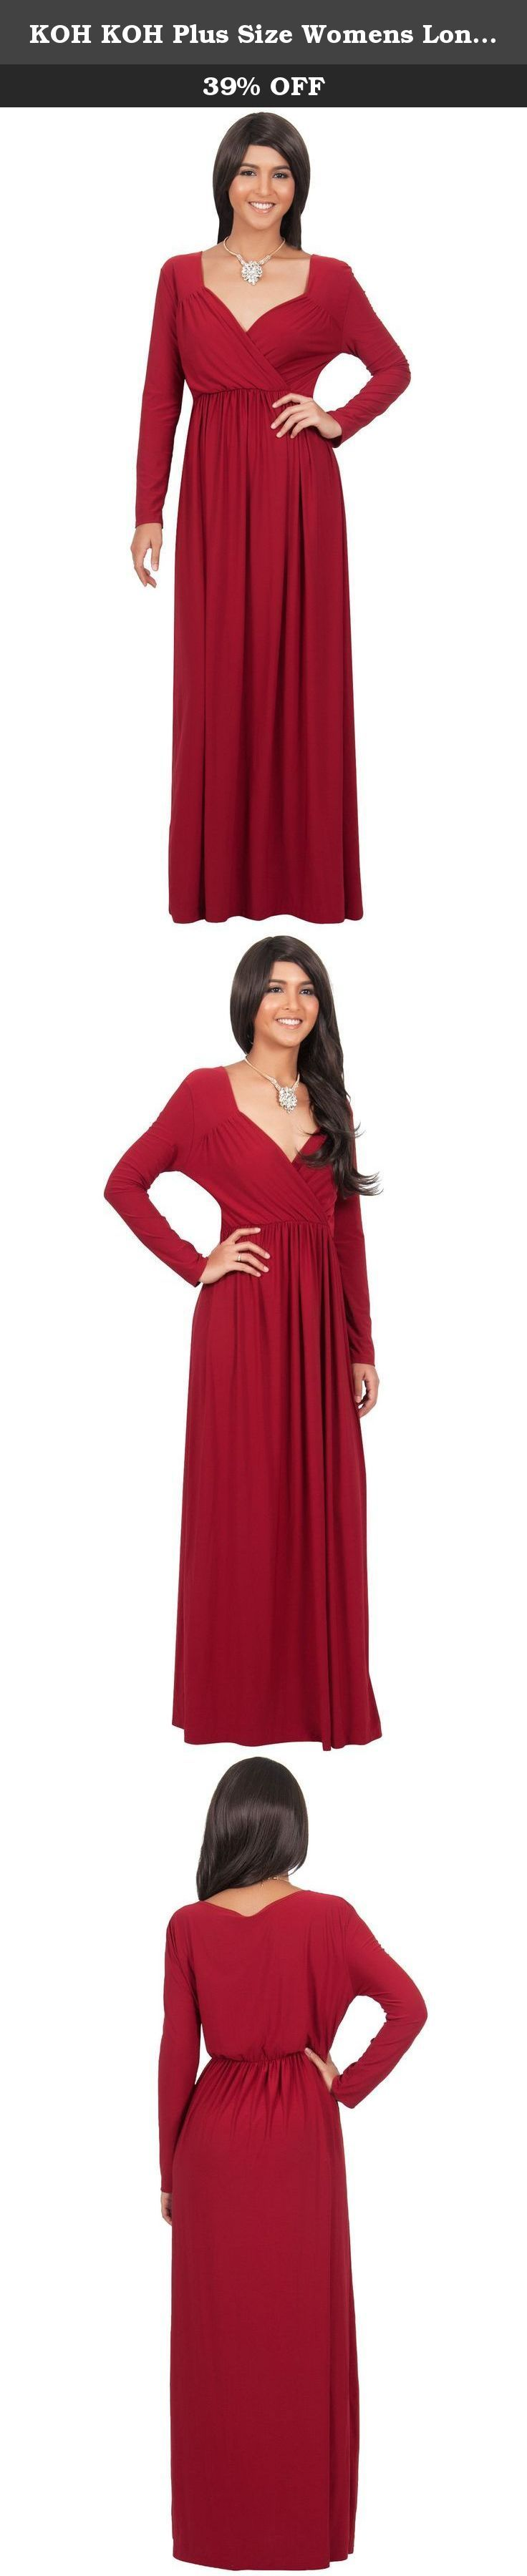 KOH KOH Plus Size Womens Long Sleeve Empire Cocktail Elegant Evening Versatile Maxi Dress, Color Crimson Red, Size 2X Large / XXL / 18-20. A highly versatile long sleeve maxi dress design from Koh Koh. Dress this simple but stunning design up or down and it will always be just perfect. Pair it with a chunky statement necklace or dangly earrings for a more formal maxi dress, semi formal maxi dress, prom maxi dress, wedding maxi dress, cocktail maxi dress event. This dress makes a great…